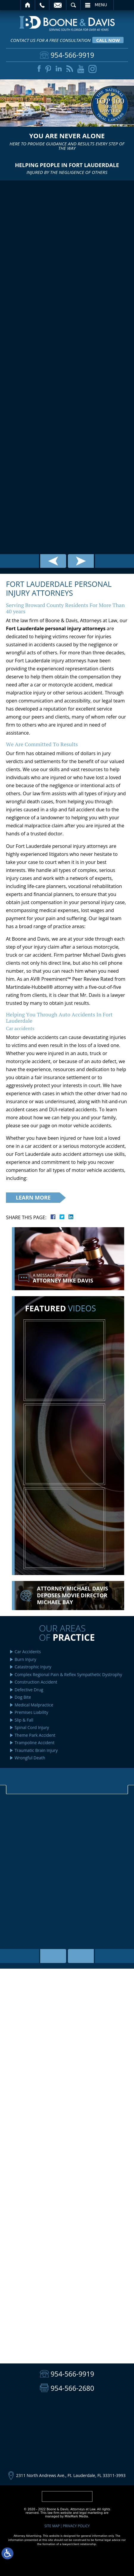 Boone & Davis, Attorneys at Law - Fort Lauderdale FL Lawyers